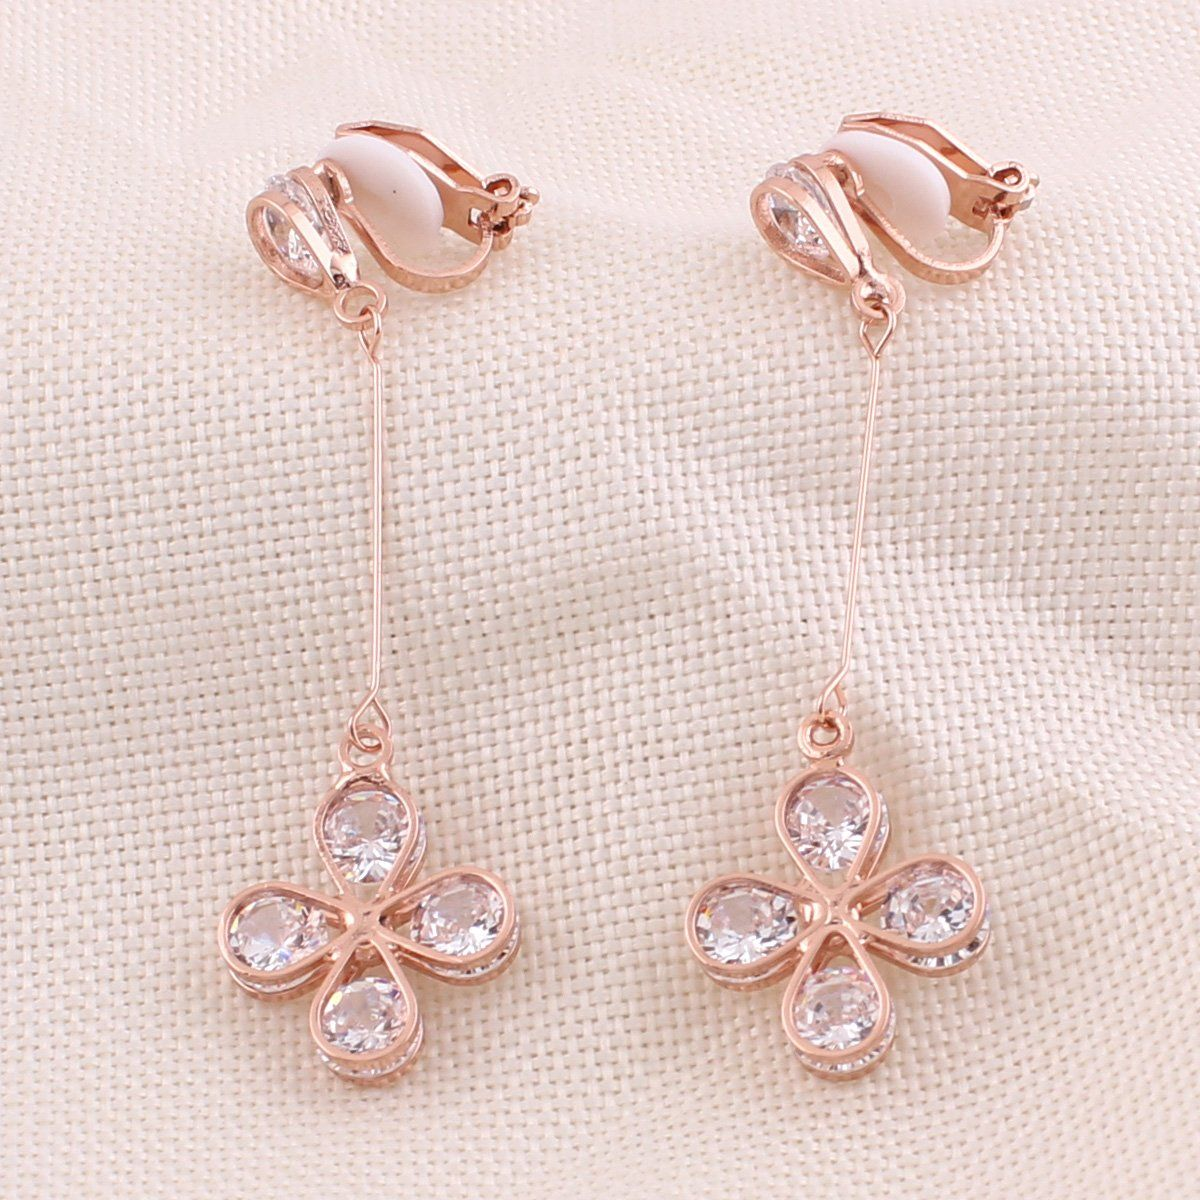 Cartilage piercing bump pop  Grace Jun New Fashion Goldtone Long Clip on Earrings Without